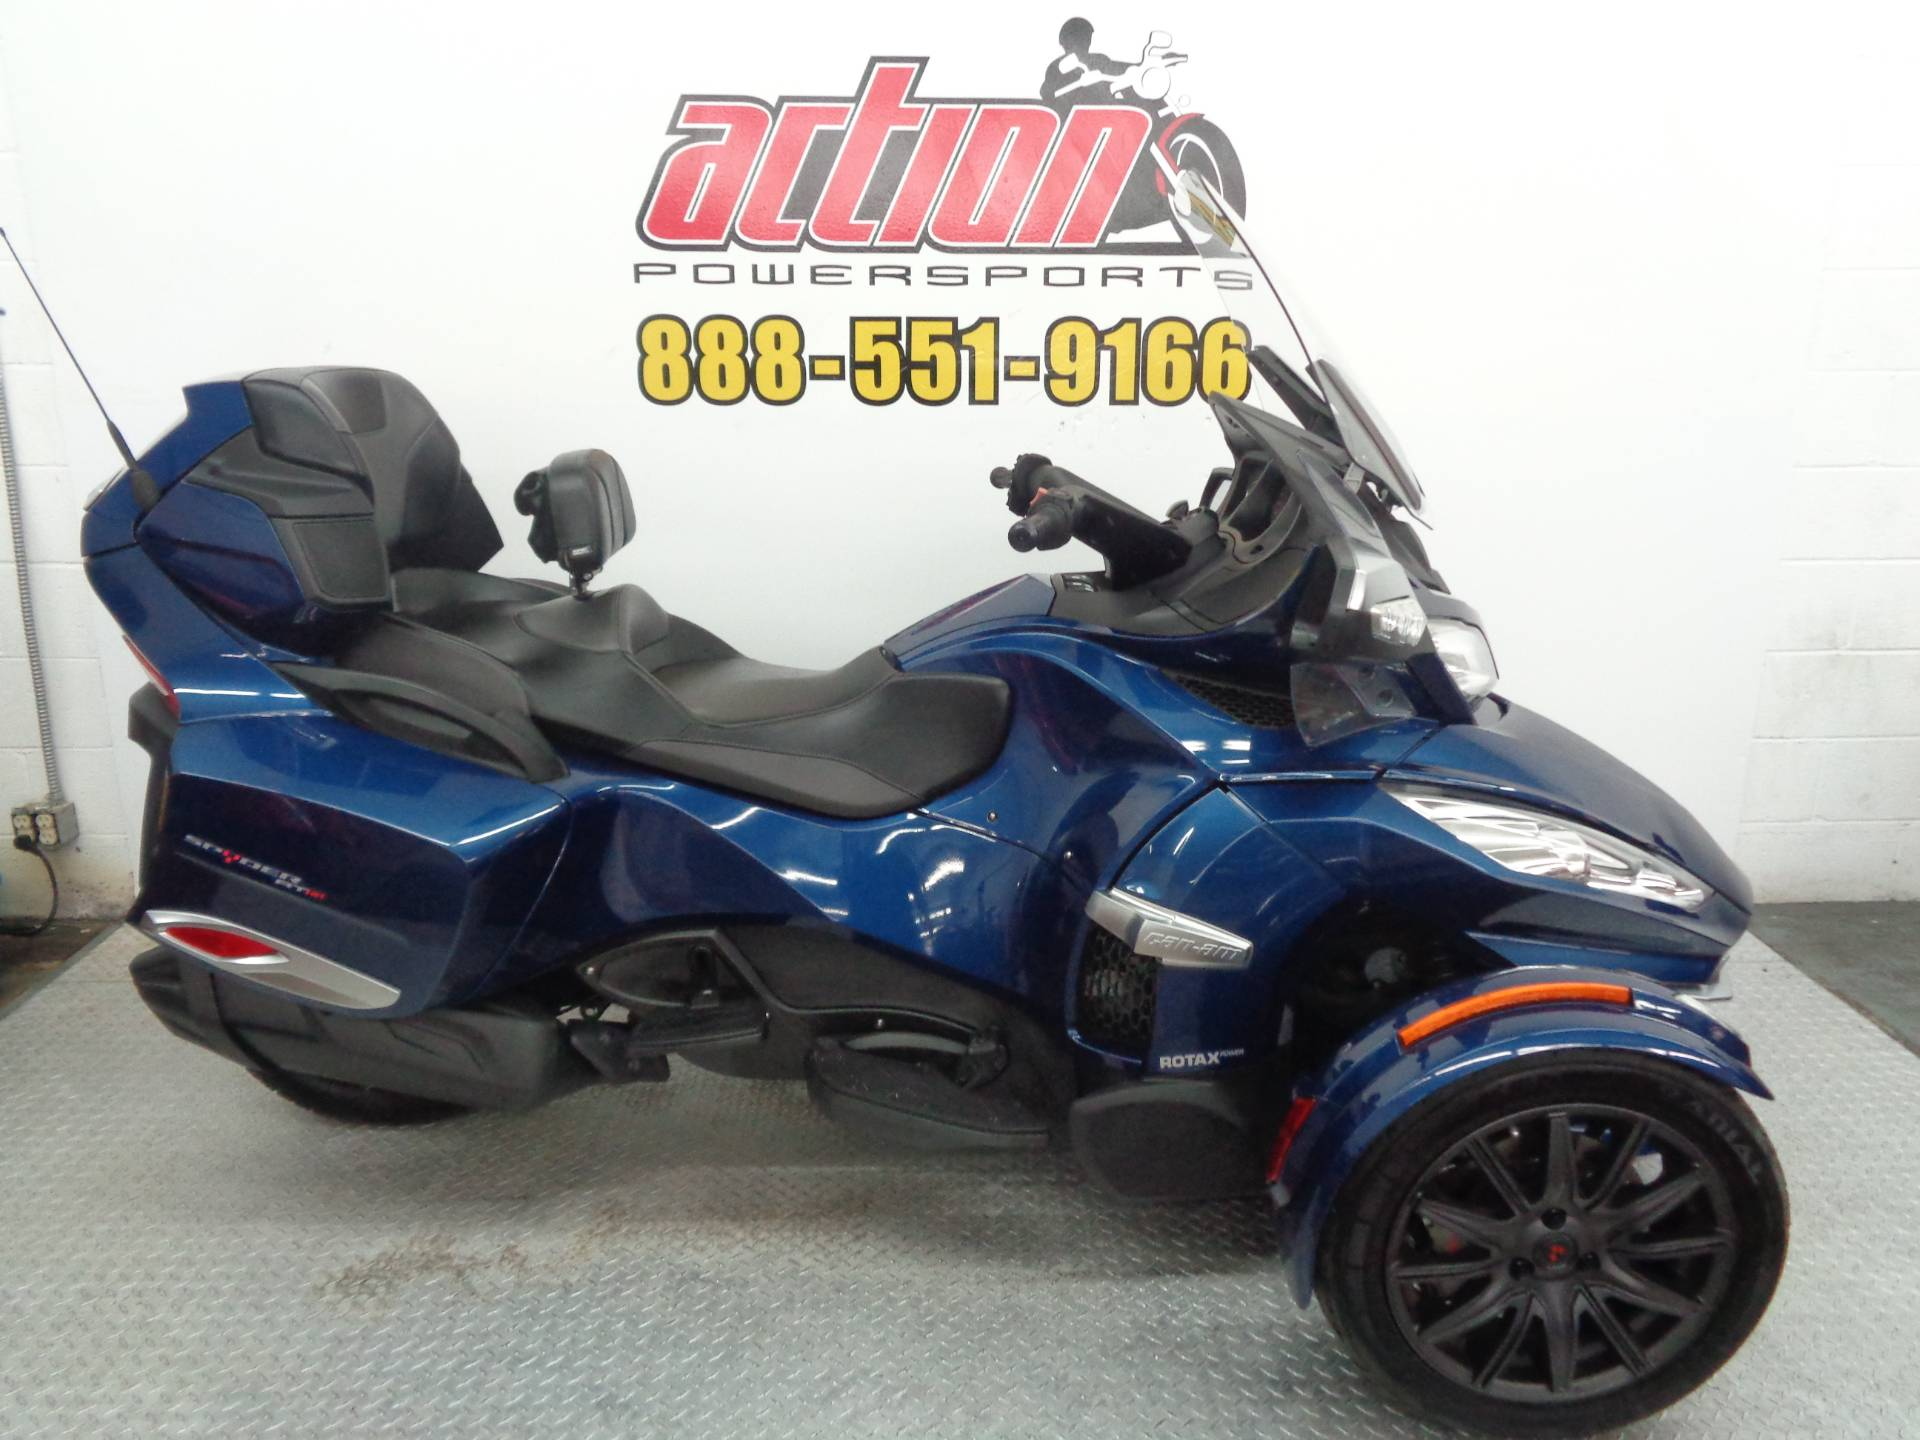 2016 Can-Am Spyder RT-S SE6 in Tulsa, Oklahoma